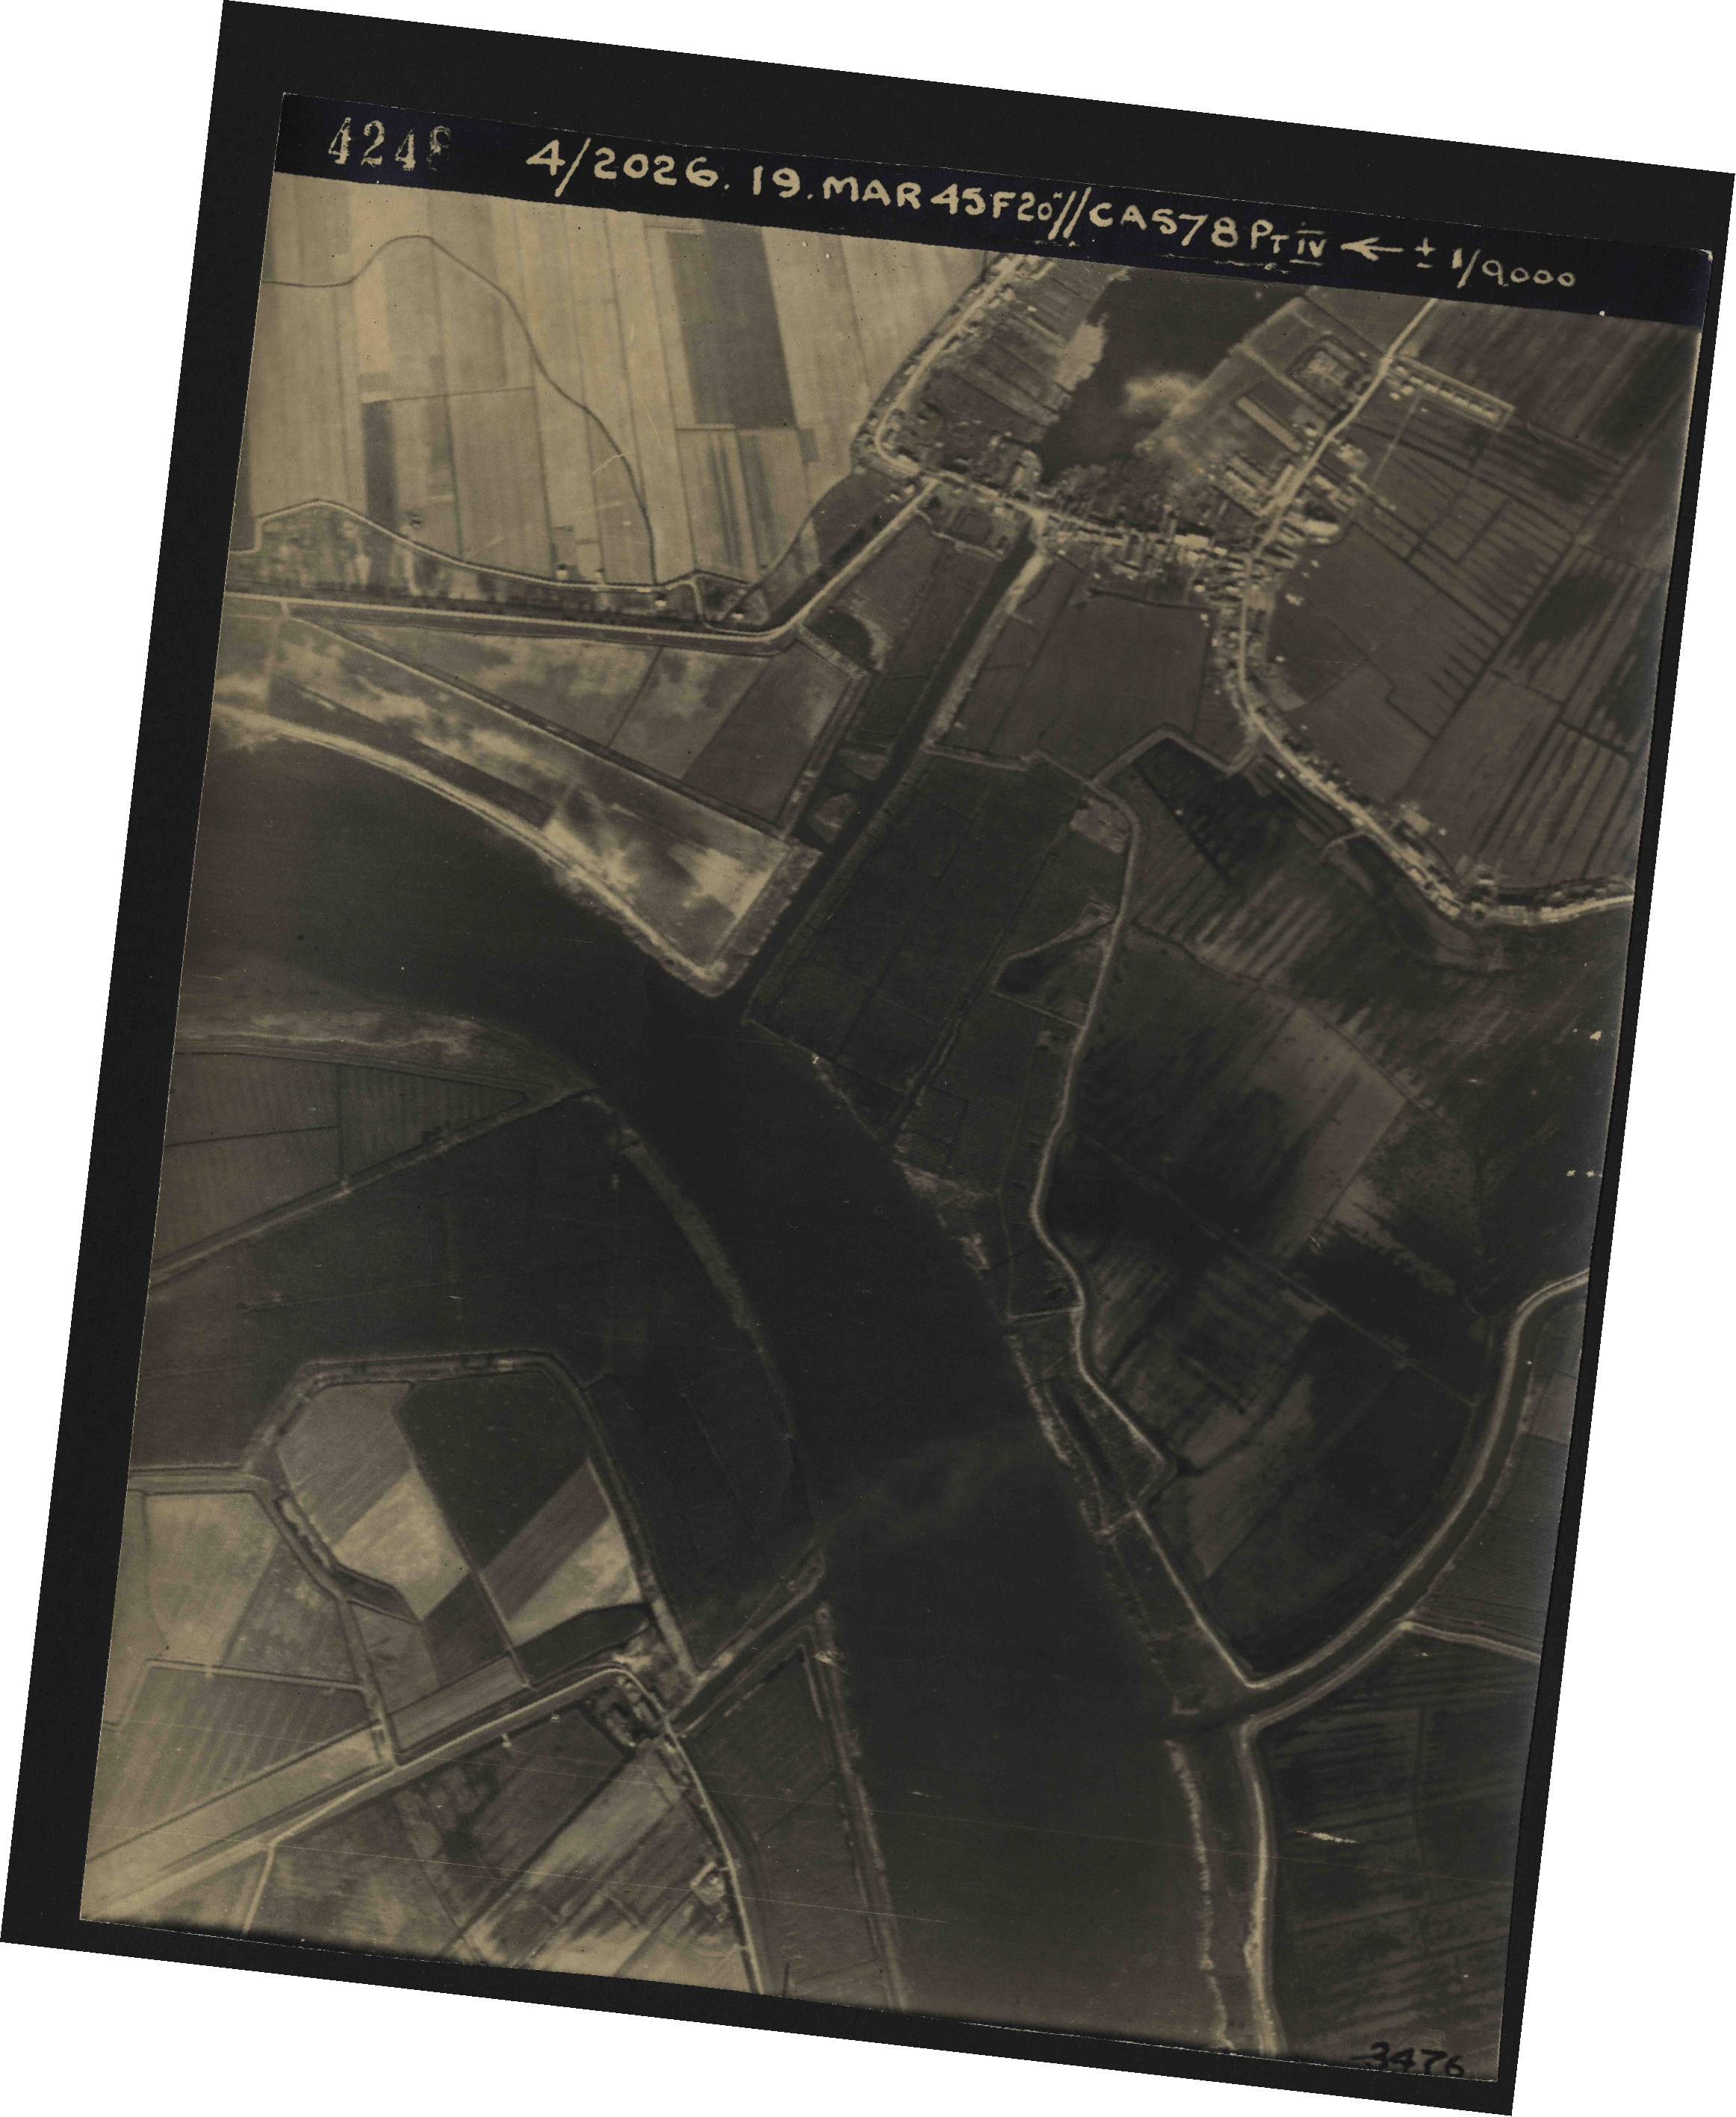 Collection RAF aerial photos 1940-1945 - flight 012, run 06, photo 4248